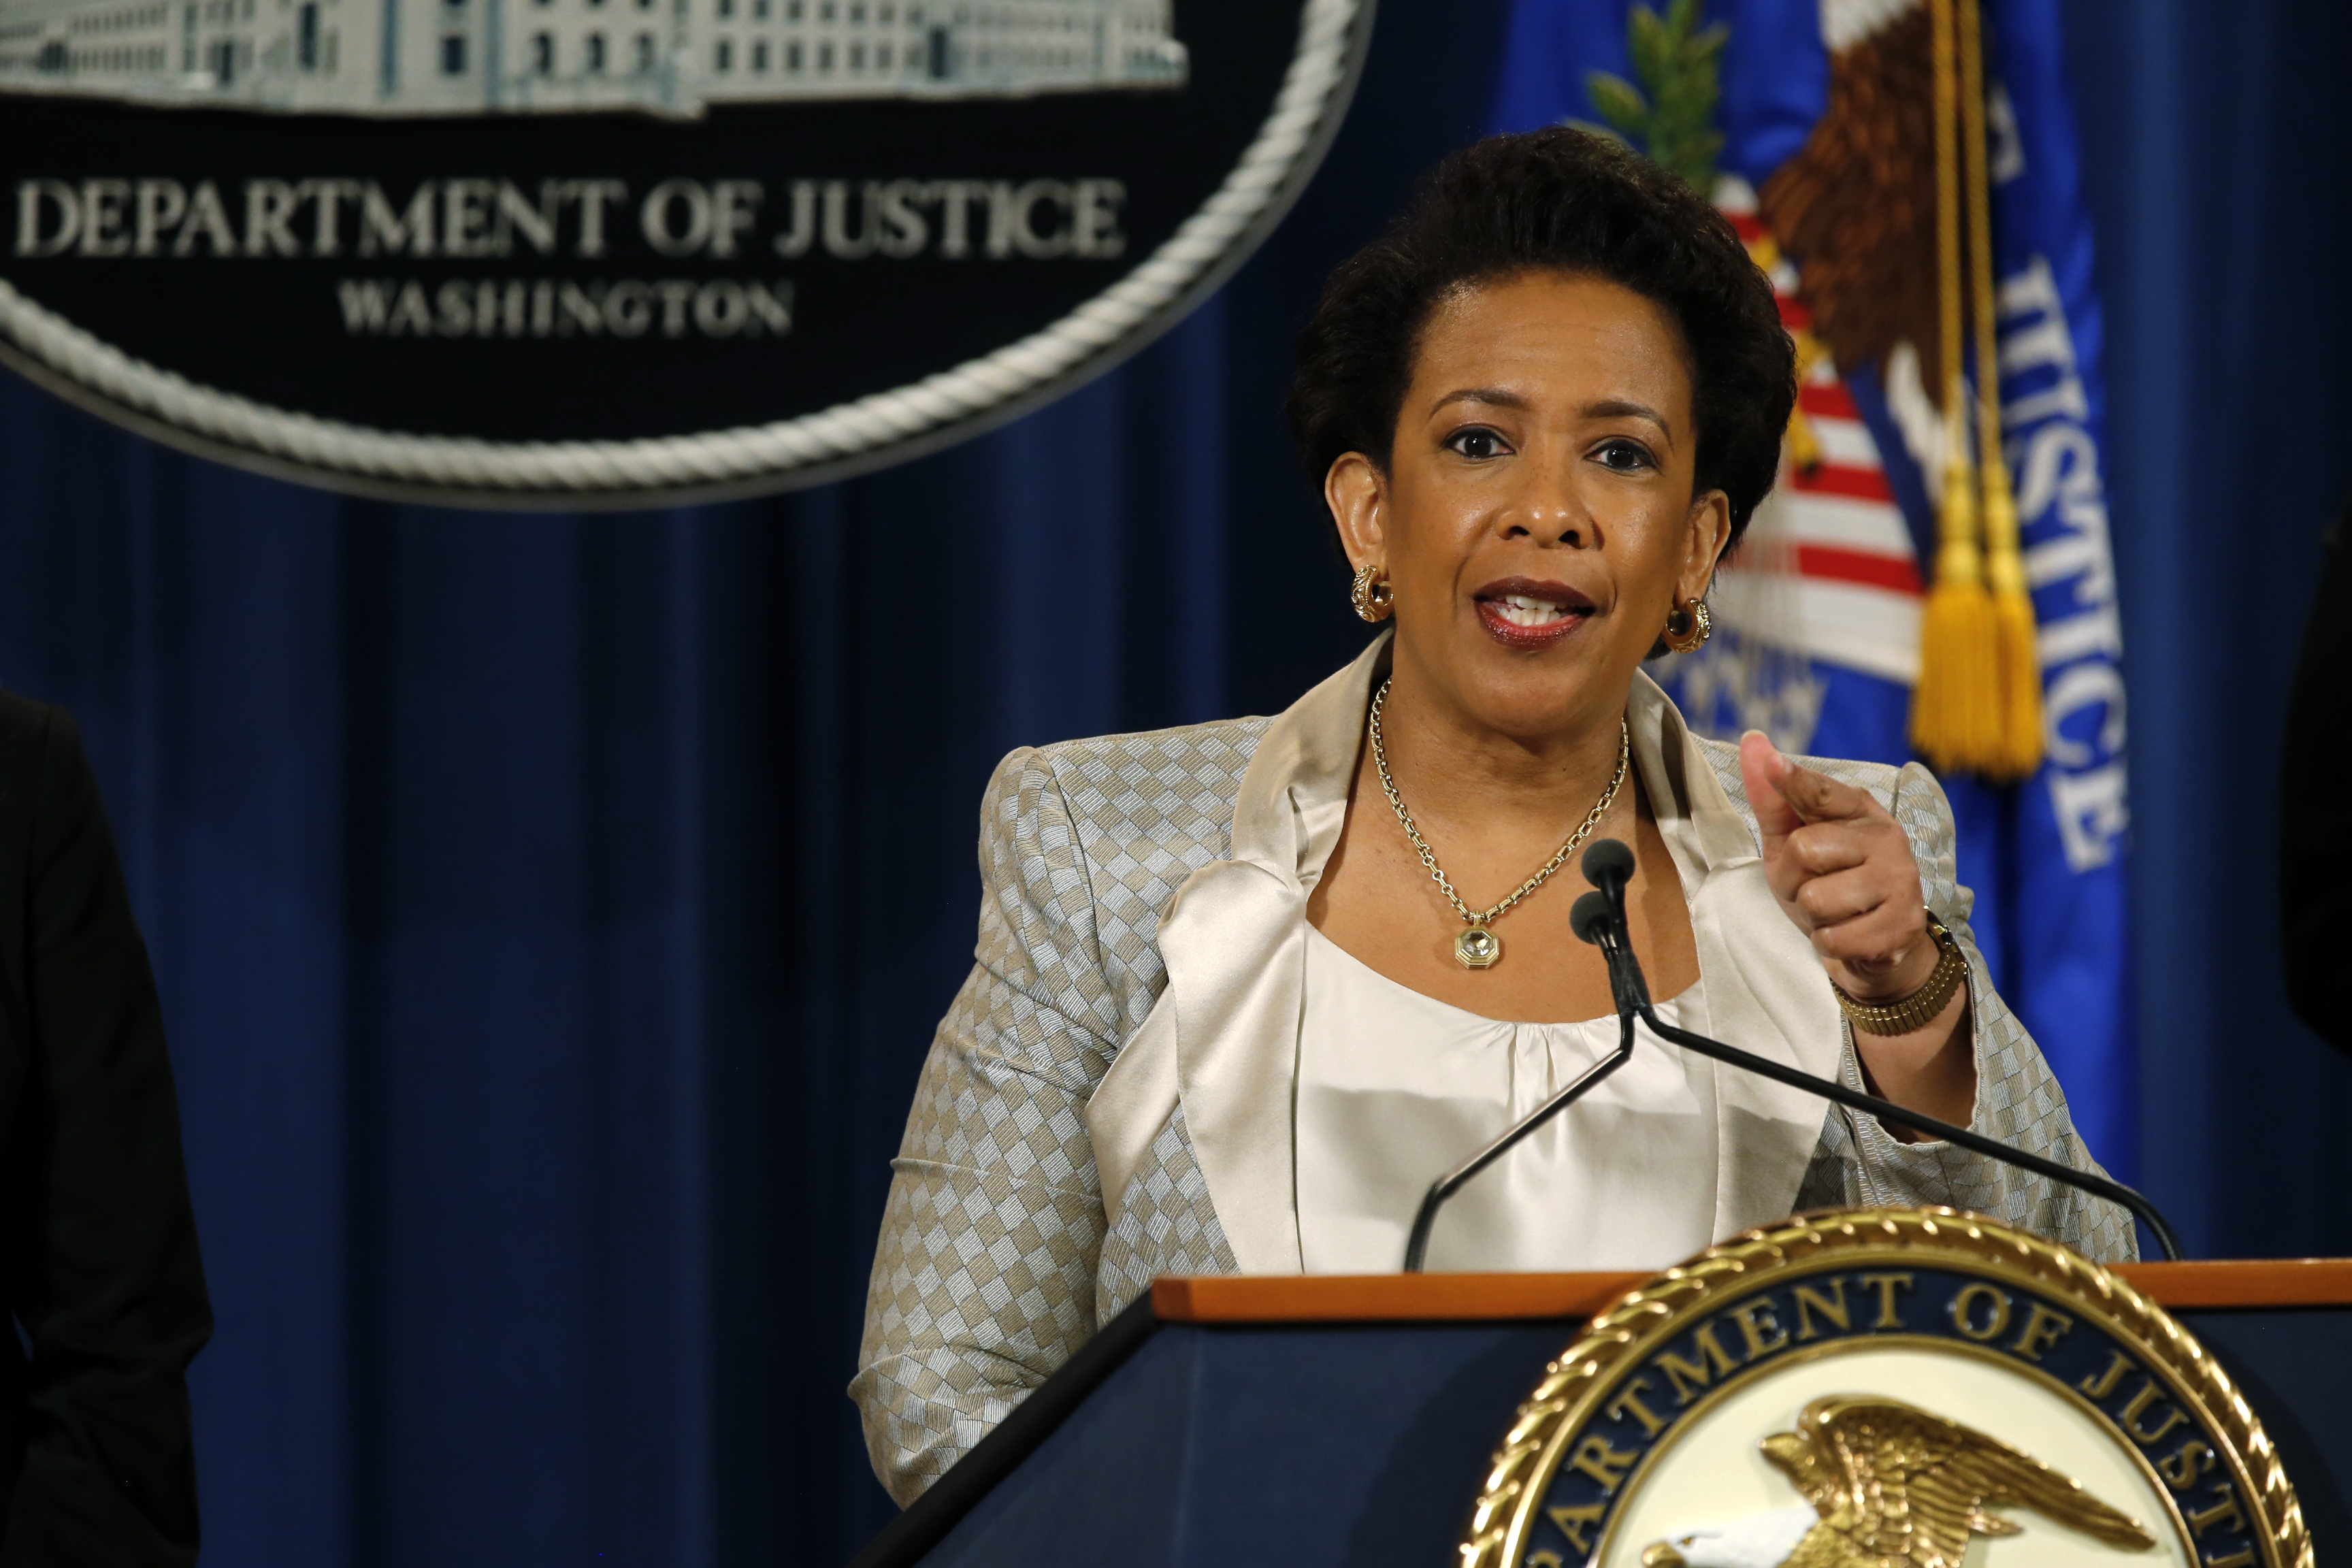 Attorney General Loretta Lynch holds a news conference announcing a federal civil rights investigation into the Baltimore Police Department. Photo by Jim Bourg/Reuters